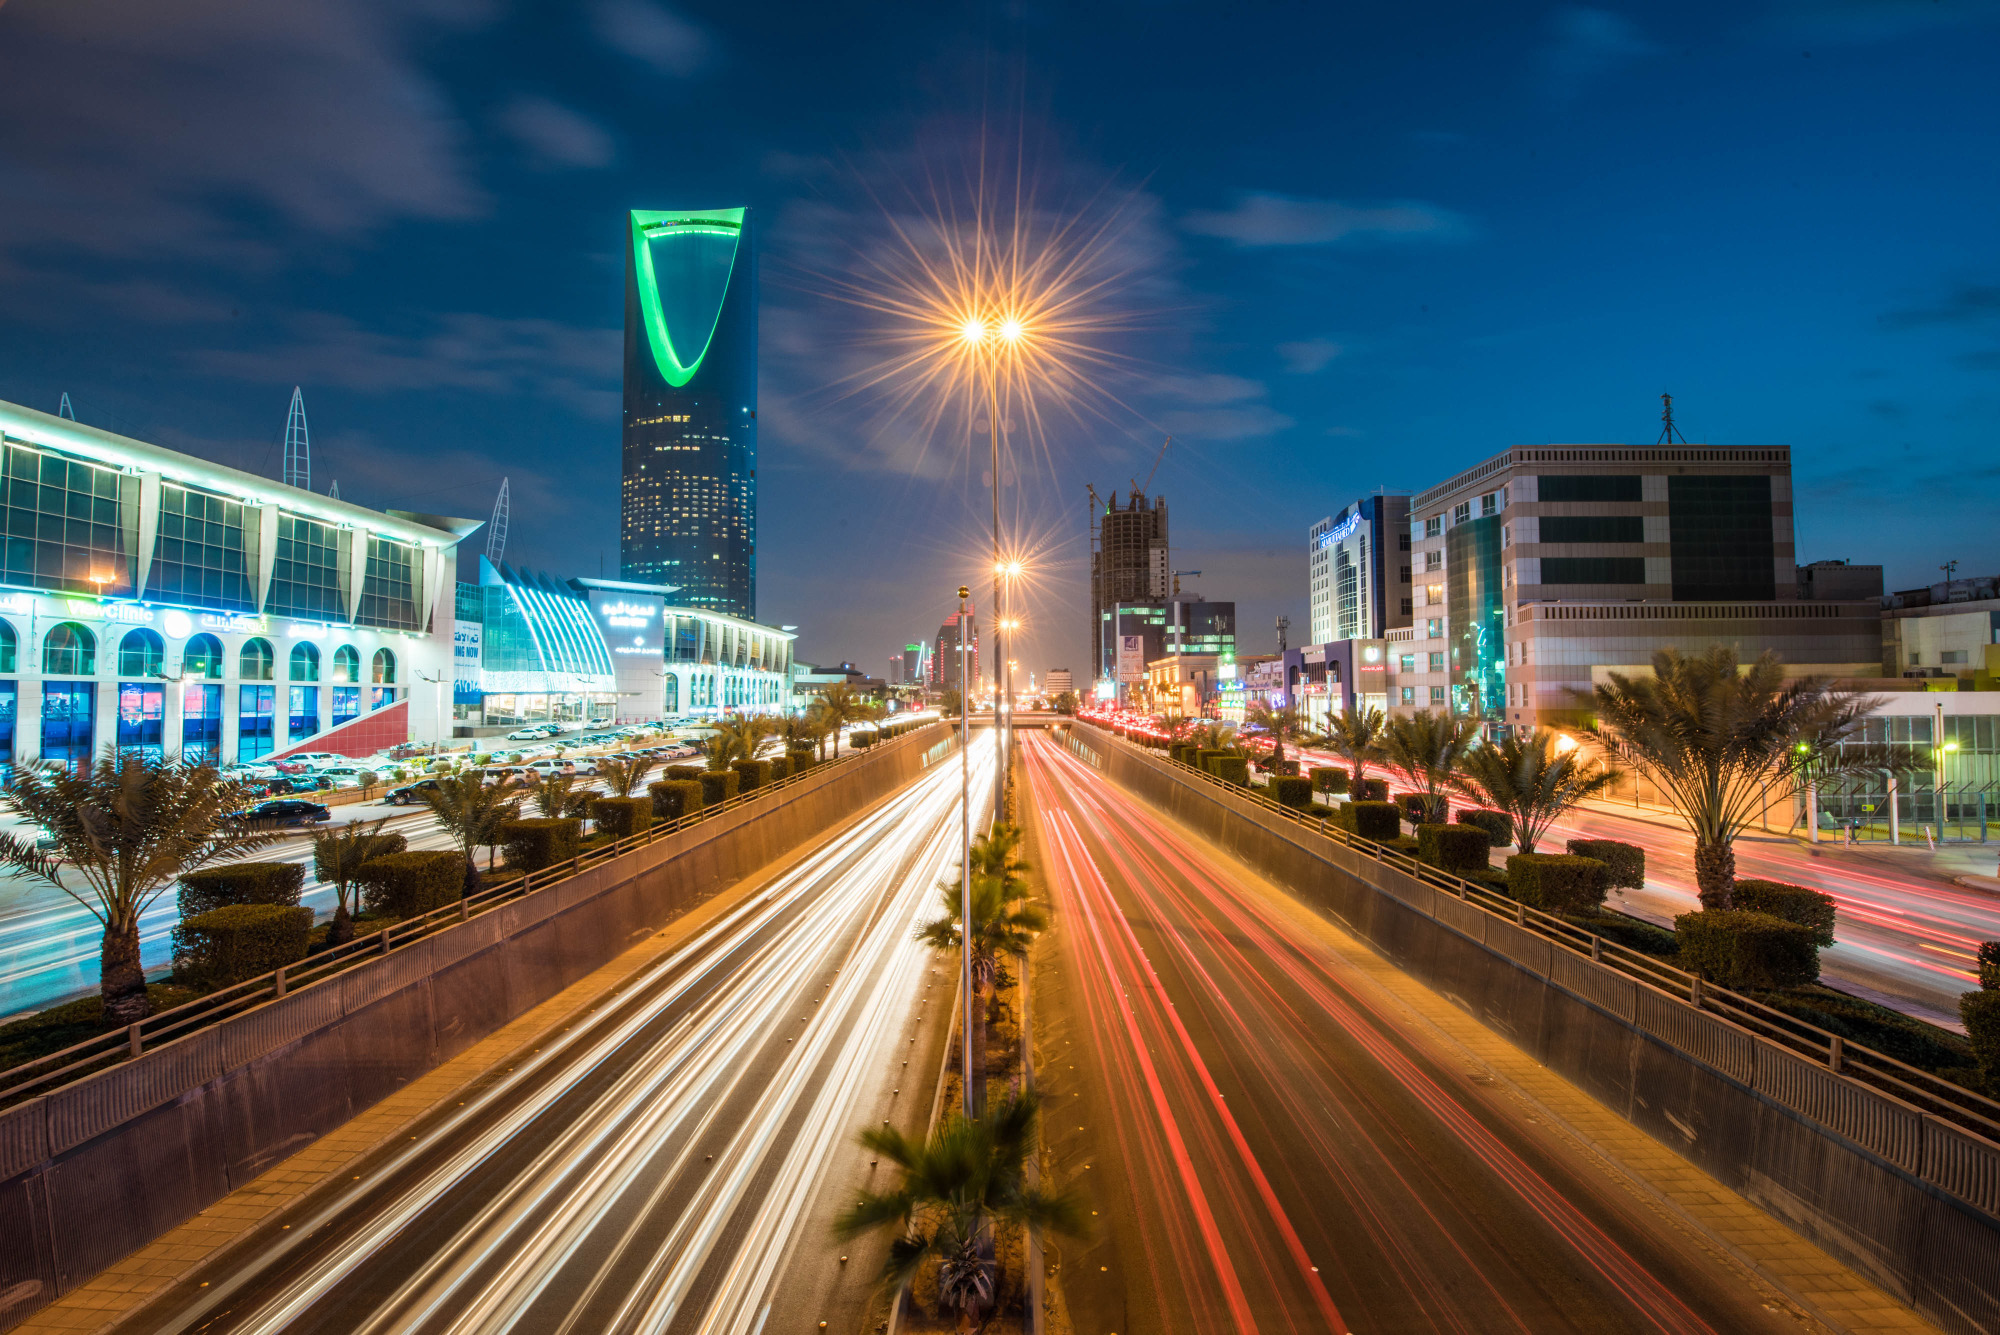 The Kingdom Tower in Riyadh. Photographer: Waseem Obaidi/Bloomberg